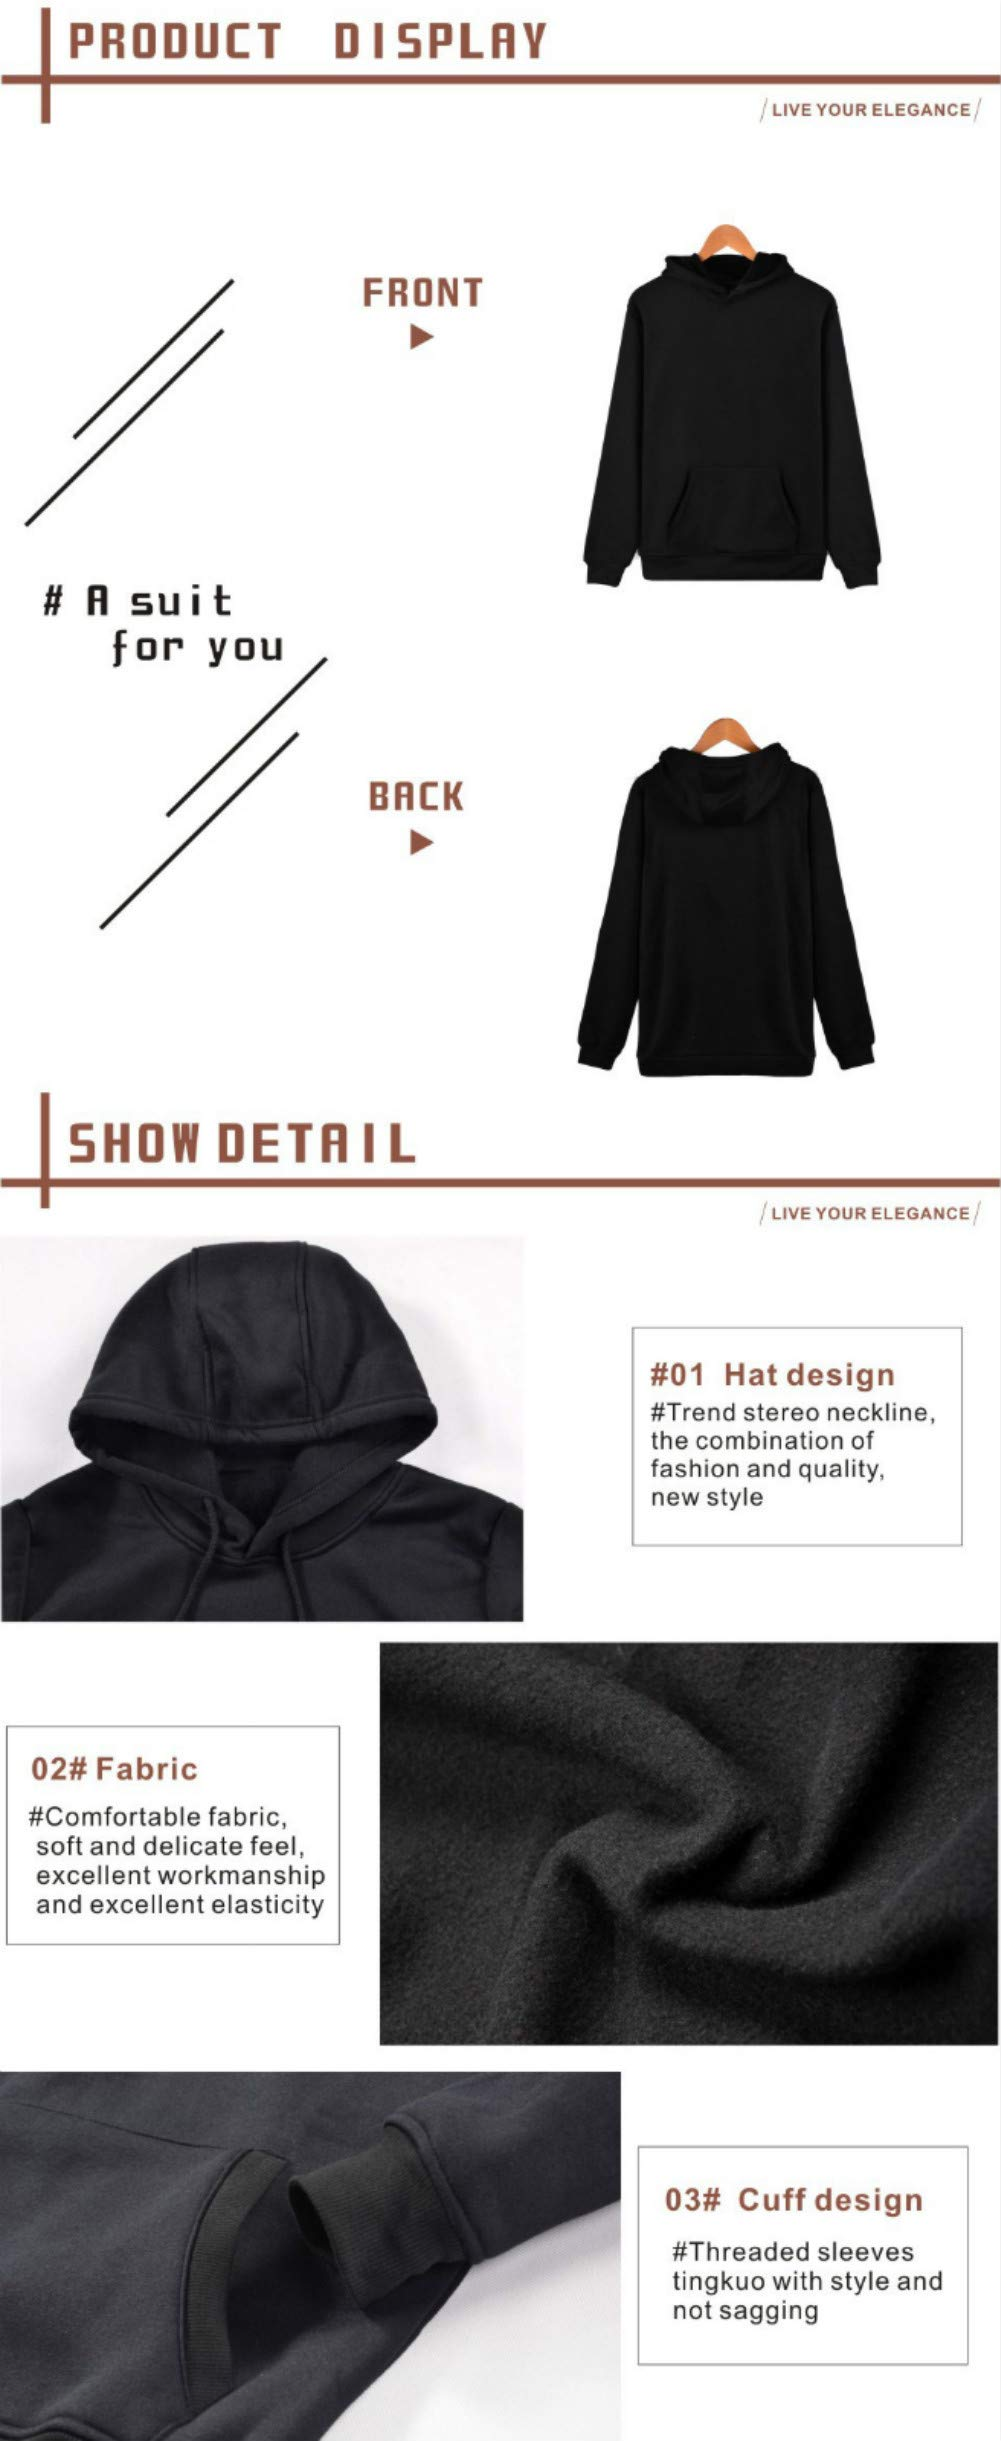 Lifestylle BTS Sweatshirt Jungkook Pullover Hoodies Rap Monster Love Yourself Her Kpop Casual Hooded Sports Sweater(XL-Large, Black) by Lifestylle (Image #4)